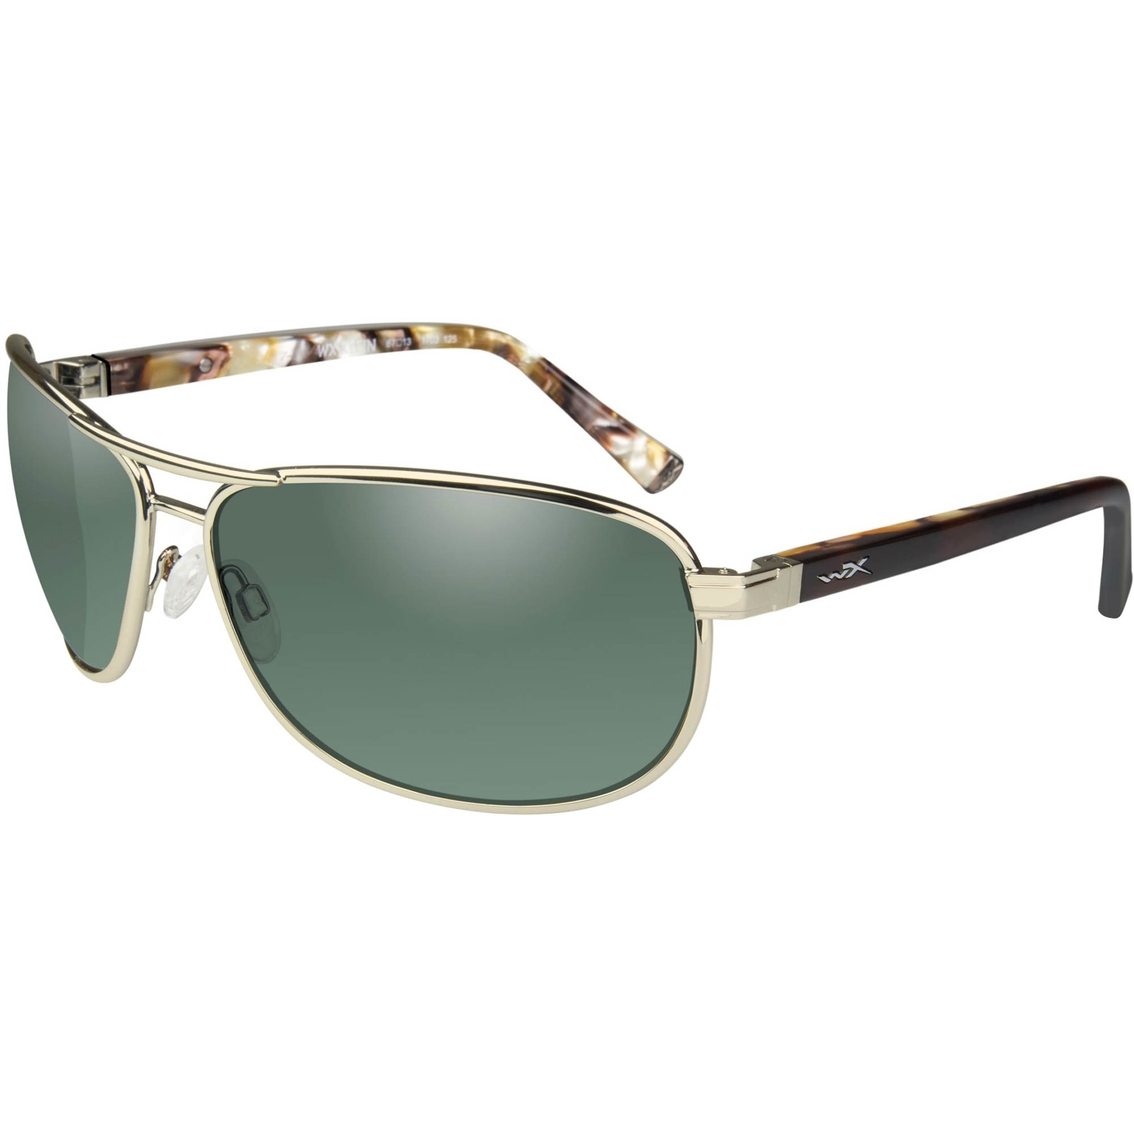 3f958772c00 Wiley X Wx Klein Sunglasses